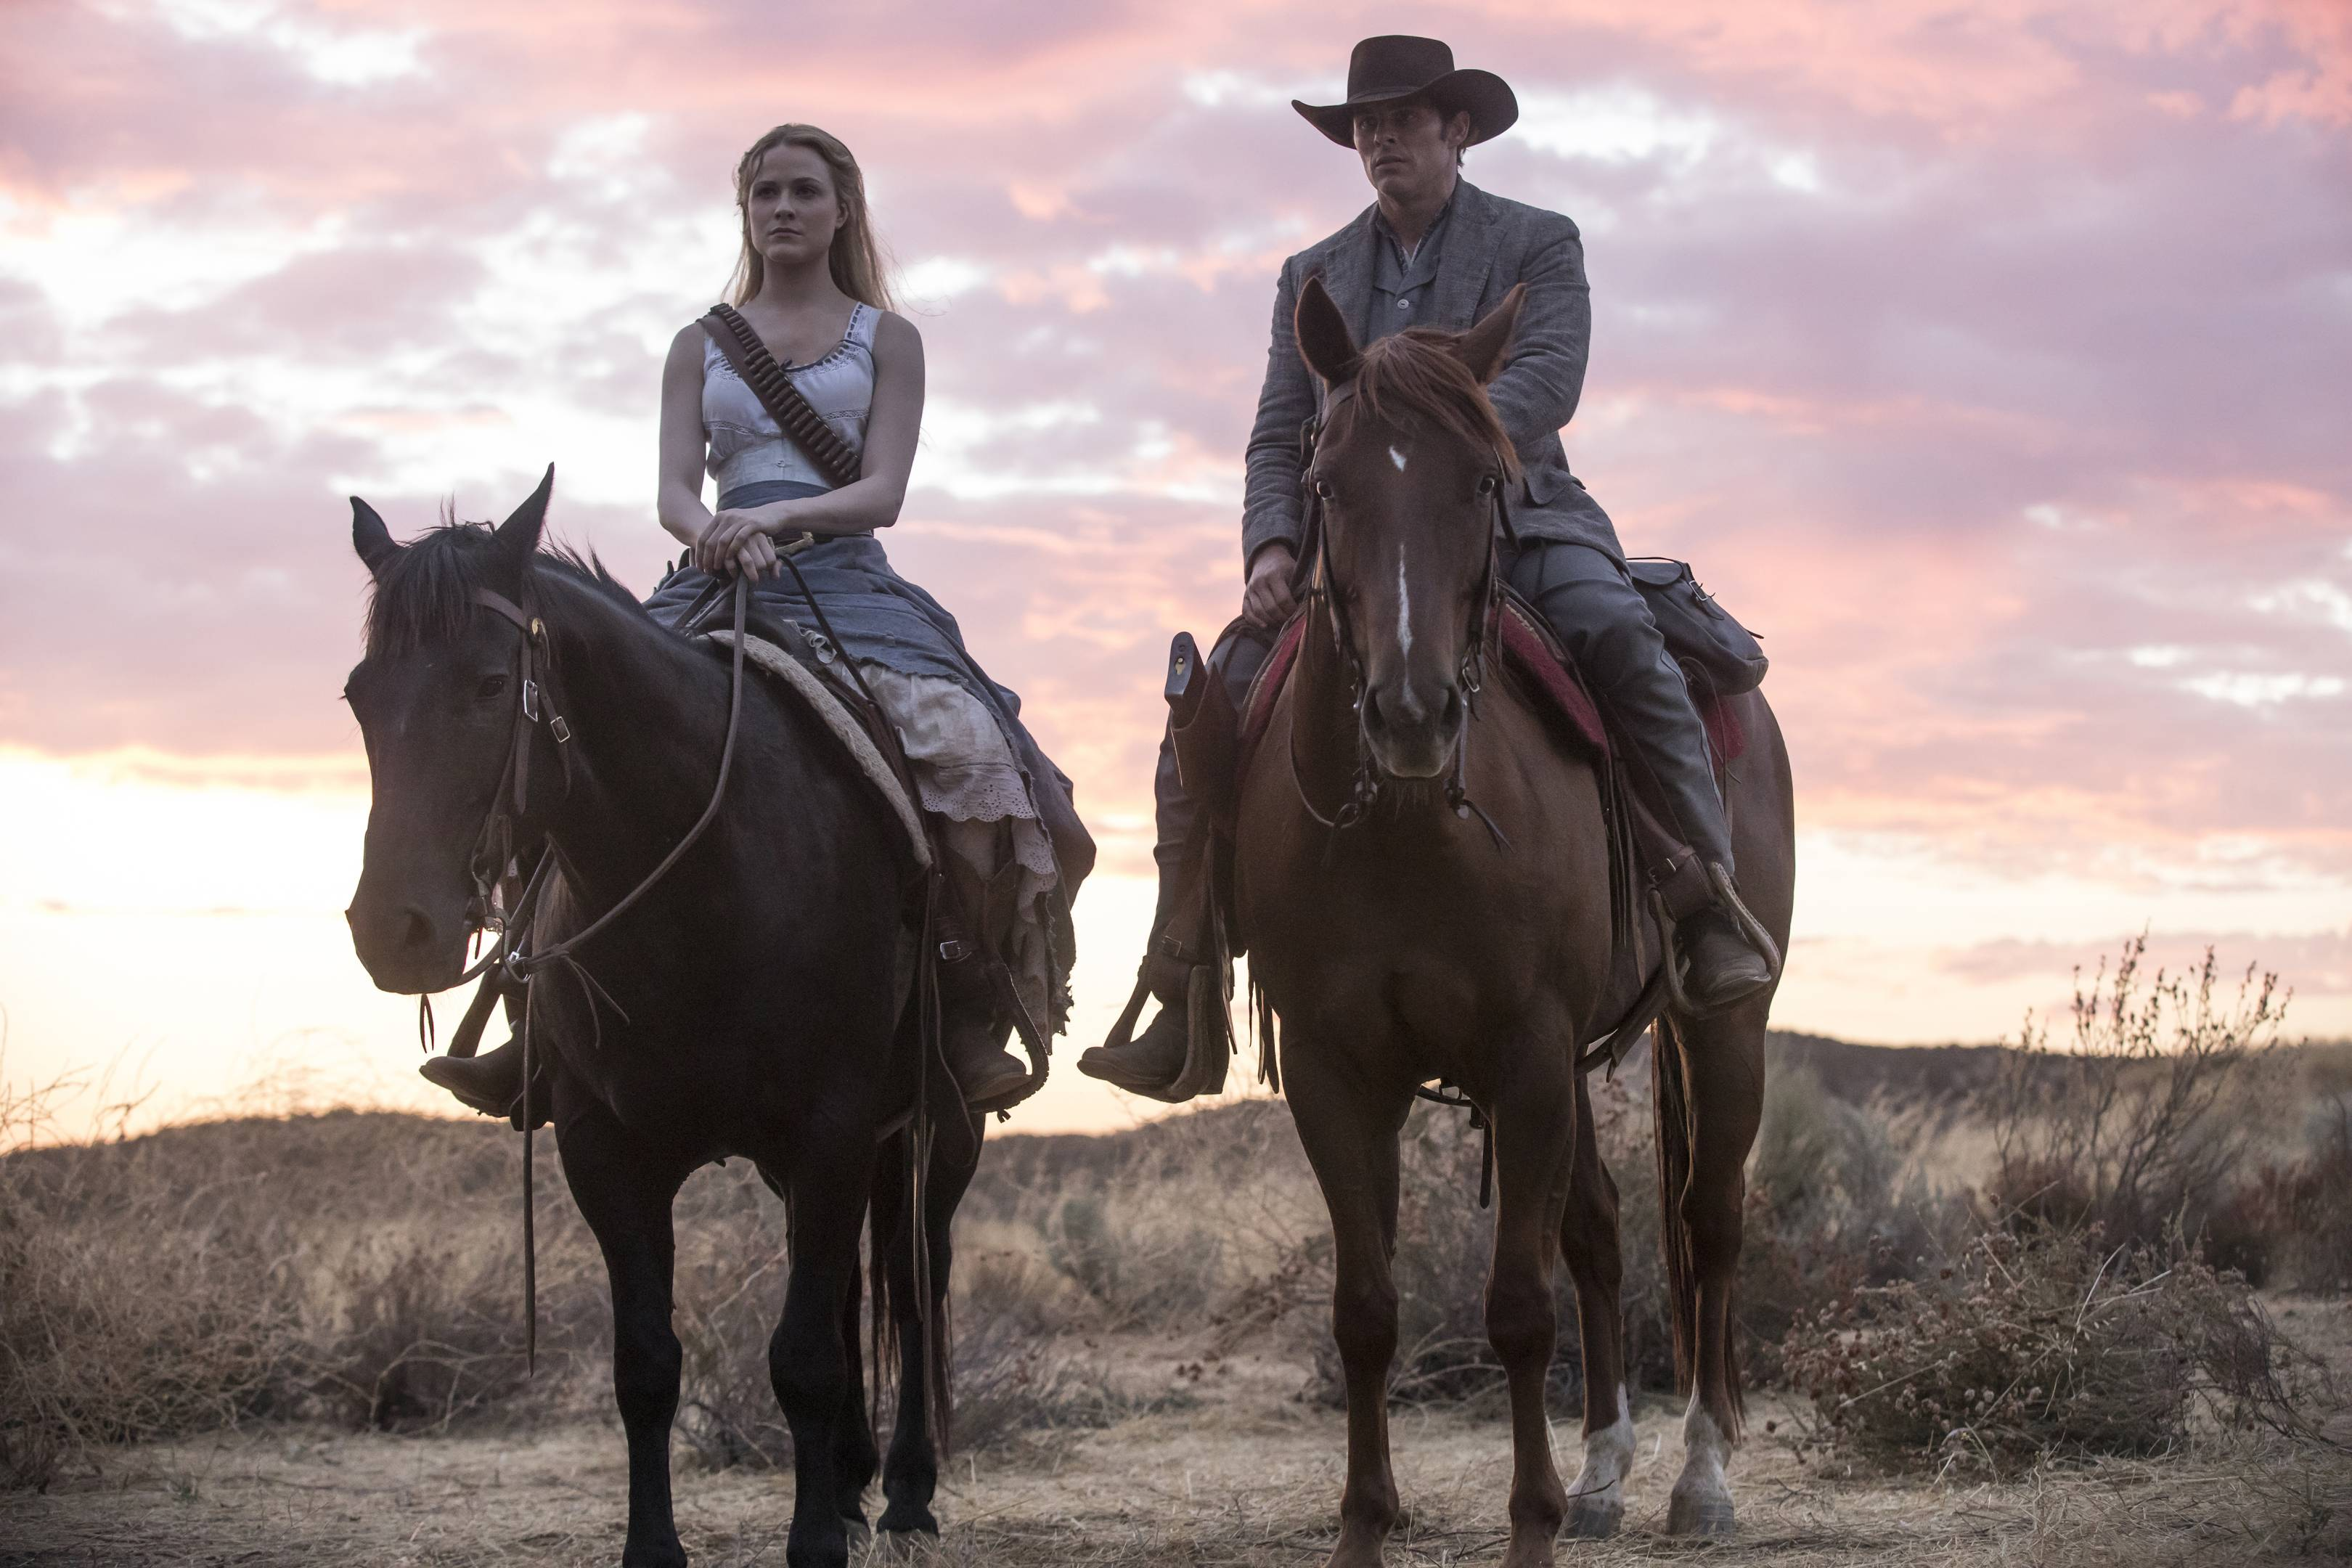 The biggest problem in Westworld season 2: what's with the crazy AI